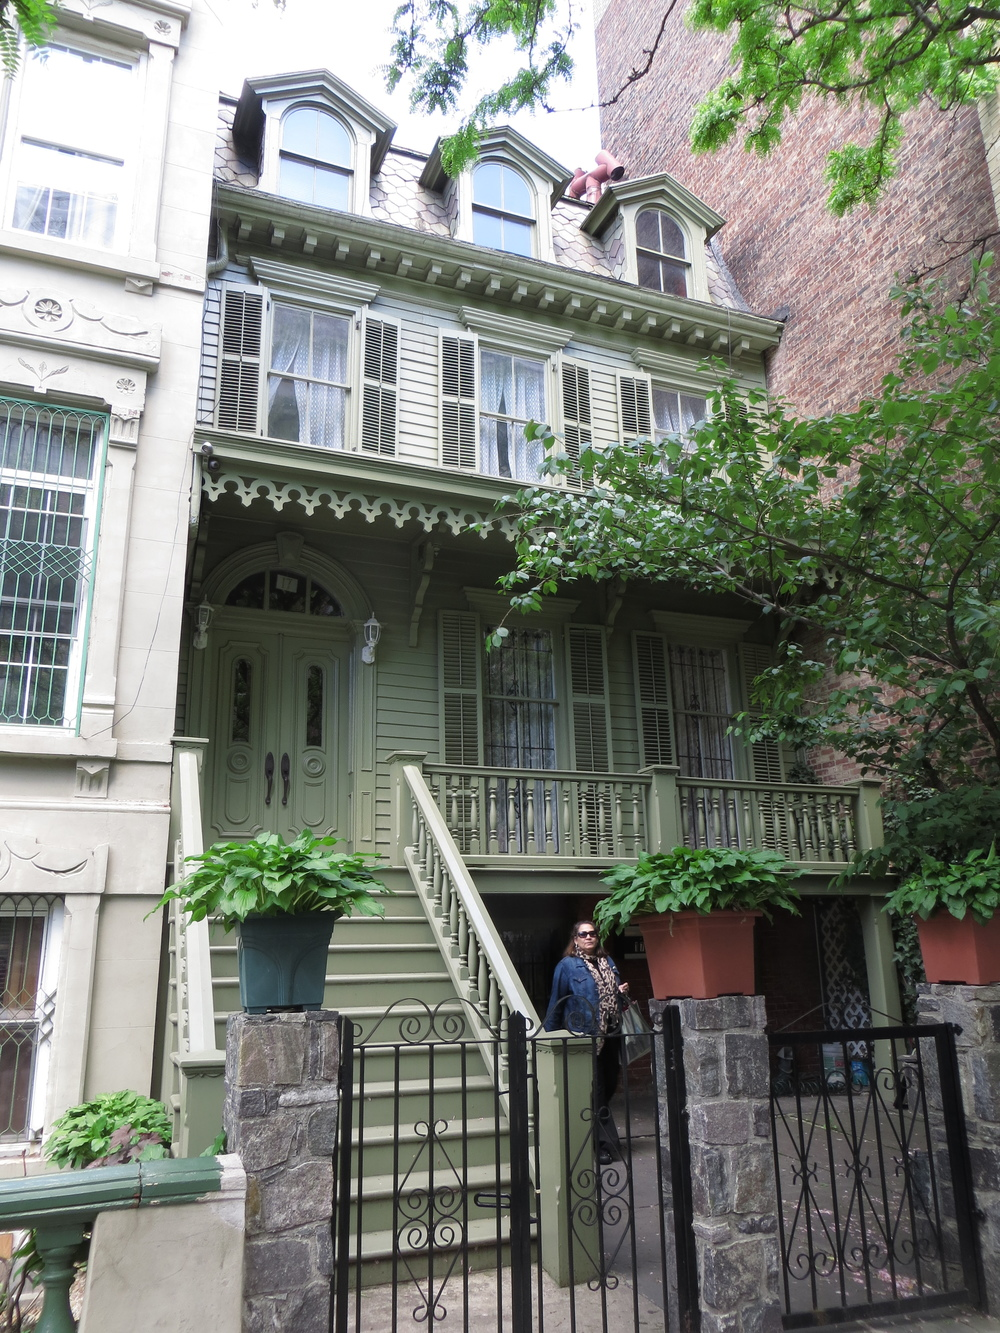 One of the last frame houses in Harlem (b. 1864)